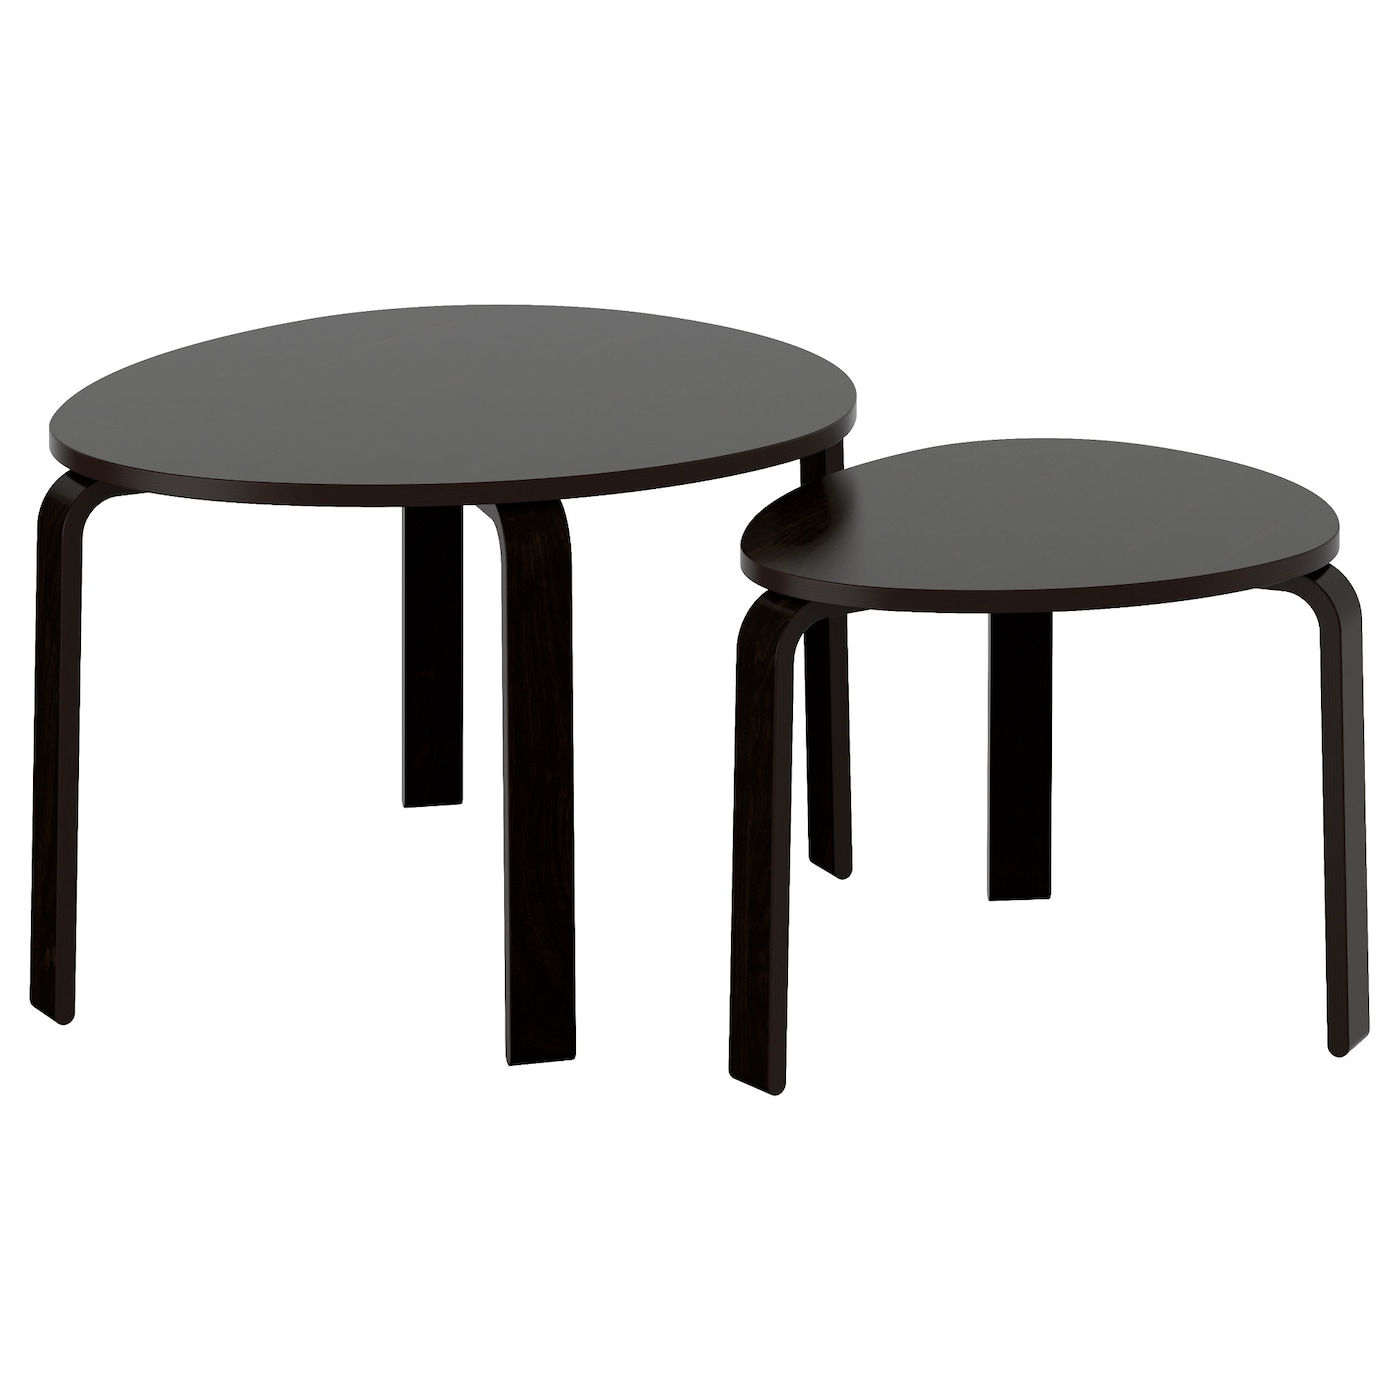 IKEA SVALSTA nest of tables, set of 2 Can be used individually or be pushed together to save space.